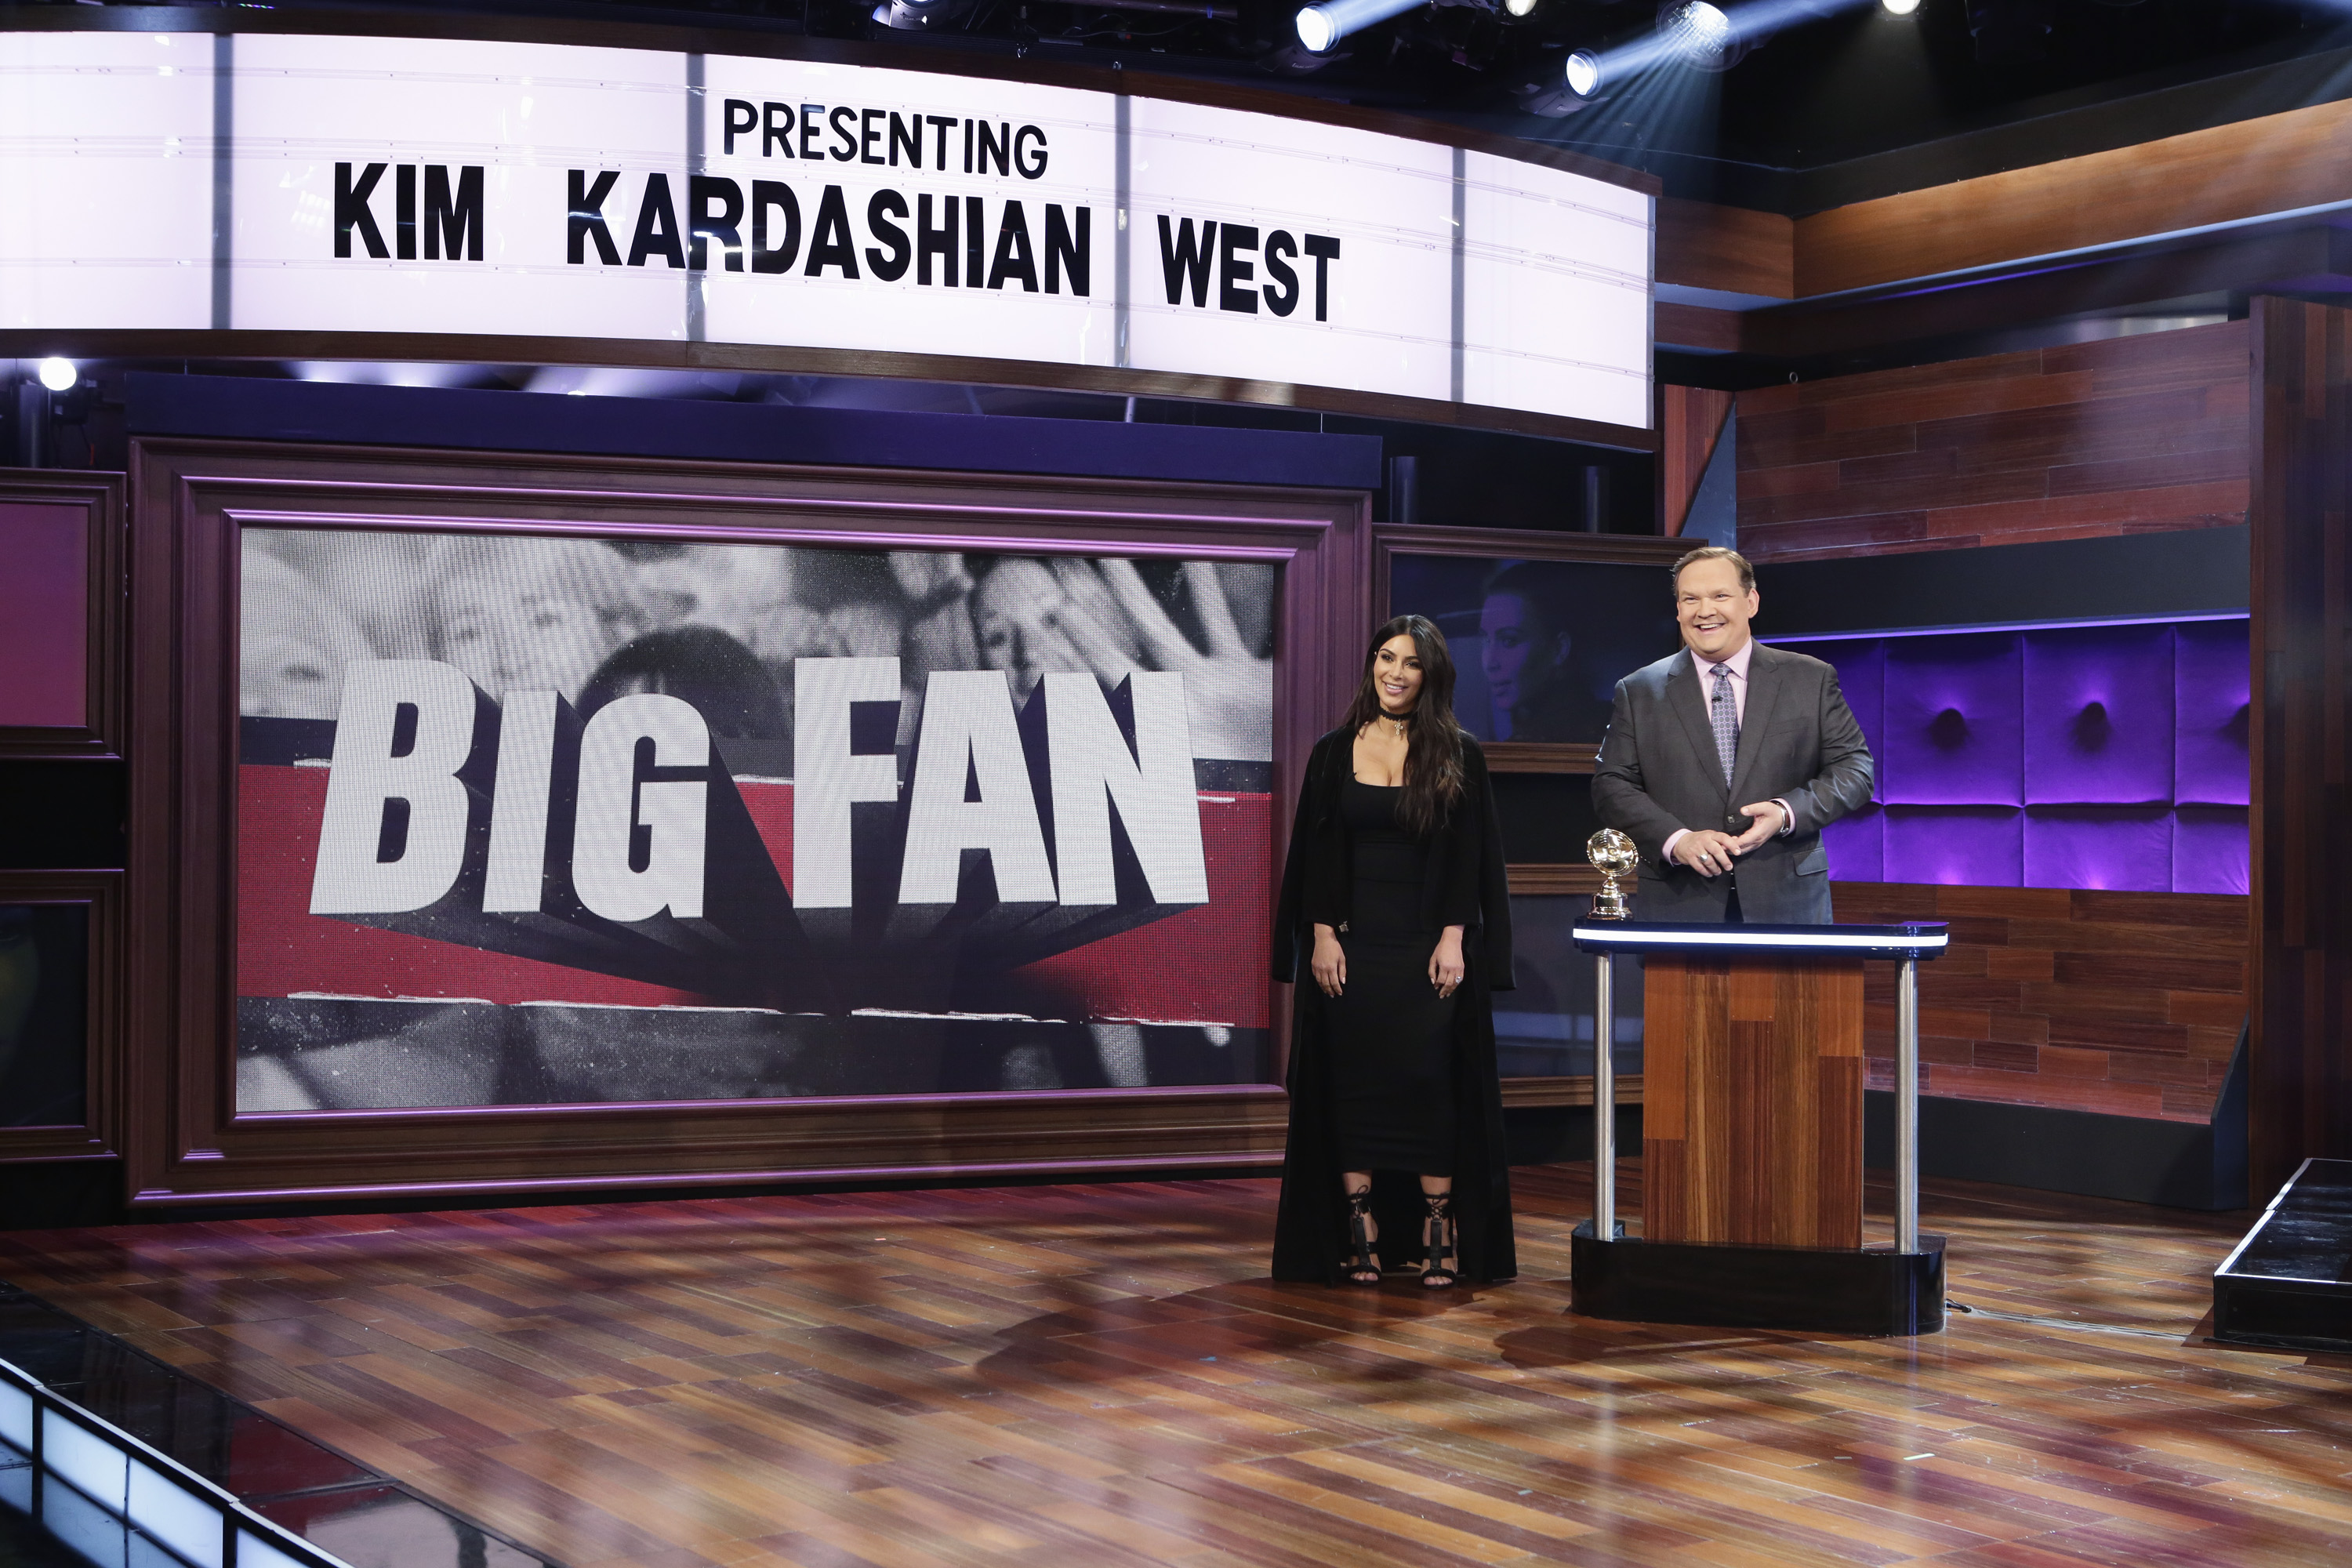 """BIG FAN - """"Big Fan Kim Kardashian West"""" airs MONDAY, JANUARY 16 (10:00-10:30 p.m. EST) on the ABC Television Network. Among Kim Kardashian West's millions of followers around the world, three are chosen to battle it out to be crowned her #1 super fan. (ABC/Nicole Wilder) KIM KARDASHIAN WEST, ANDY RICHTER"""